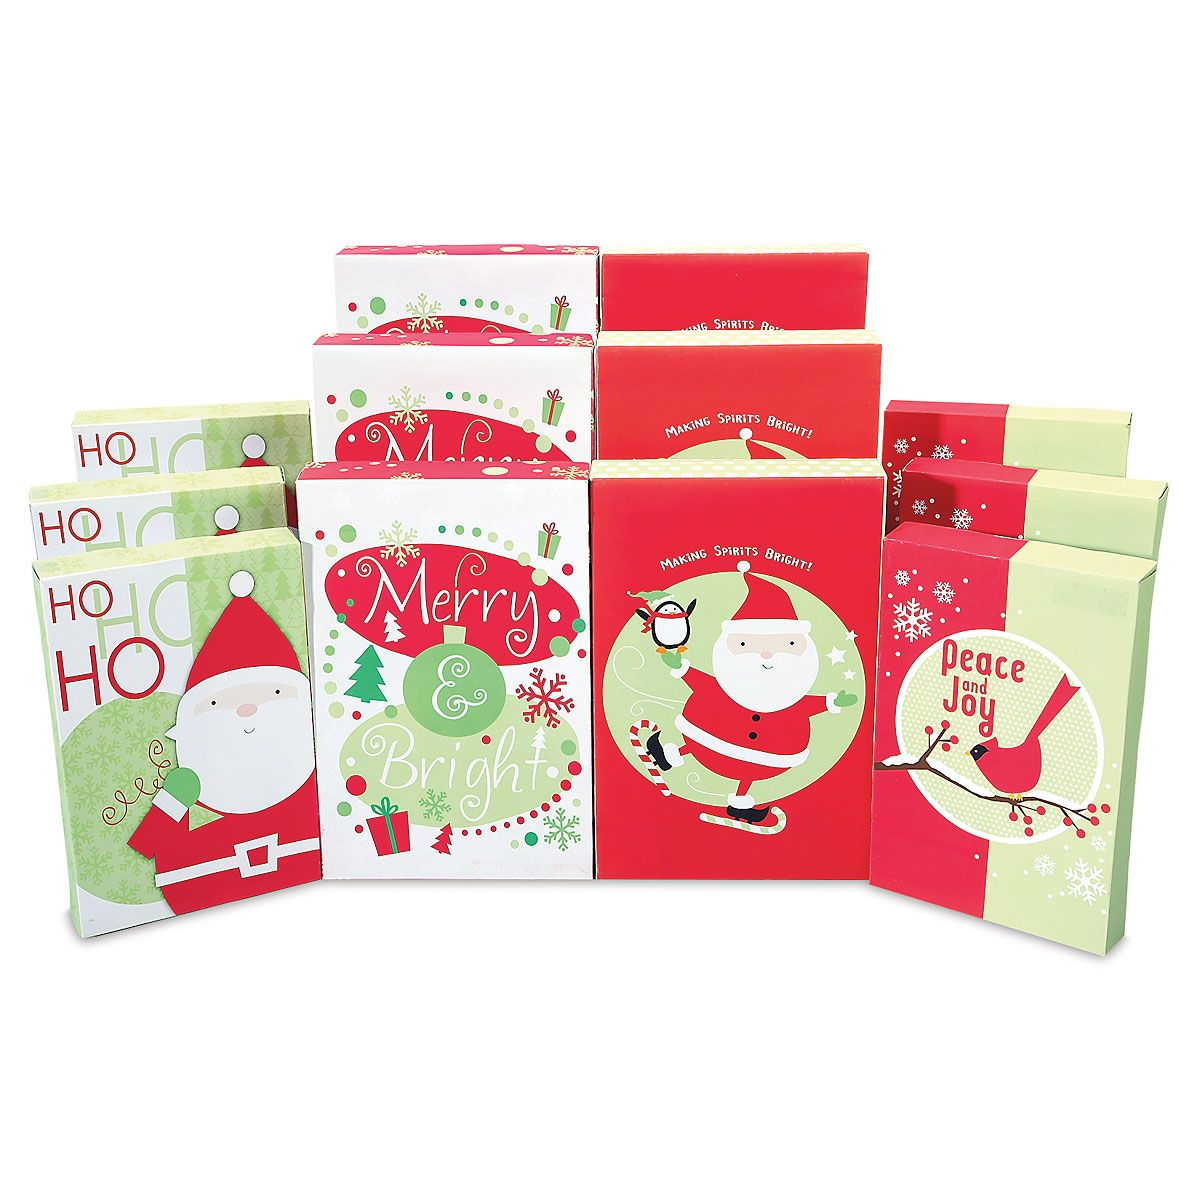 Printed Christmas Shirt Boxes Gift Box Value Pack